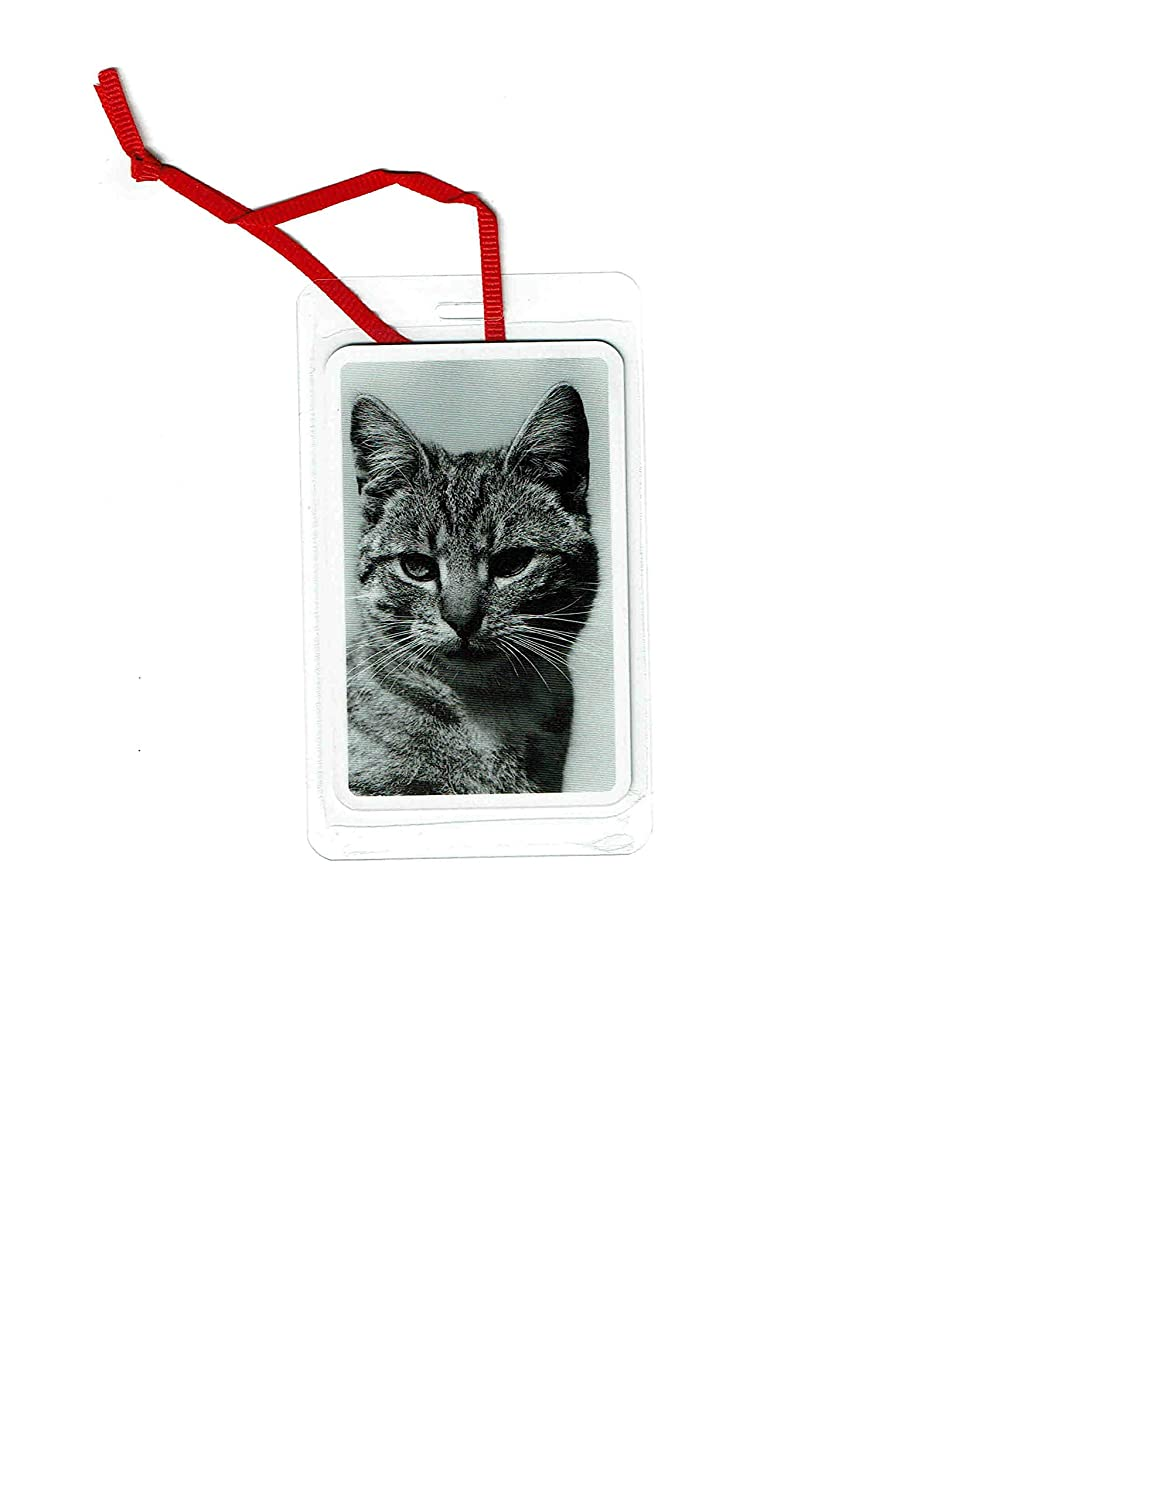 Amazon Com Tiger Striped Black And White Cat Ornament And Thinking Of You Greeting Card Handmade